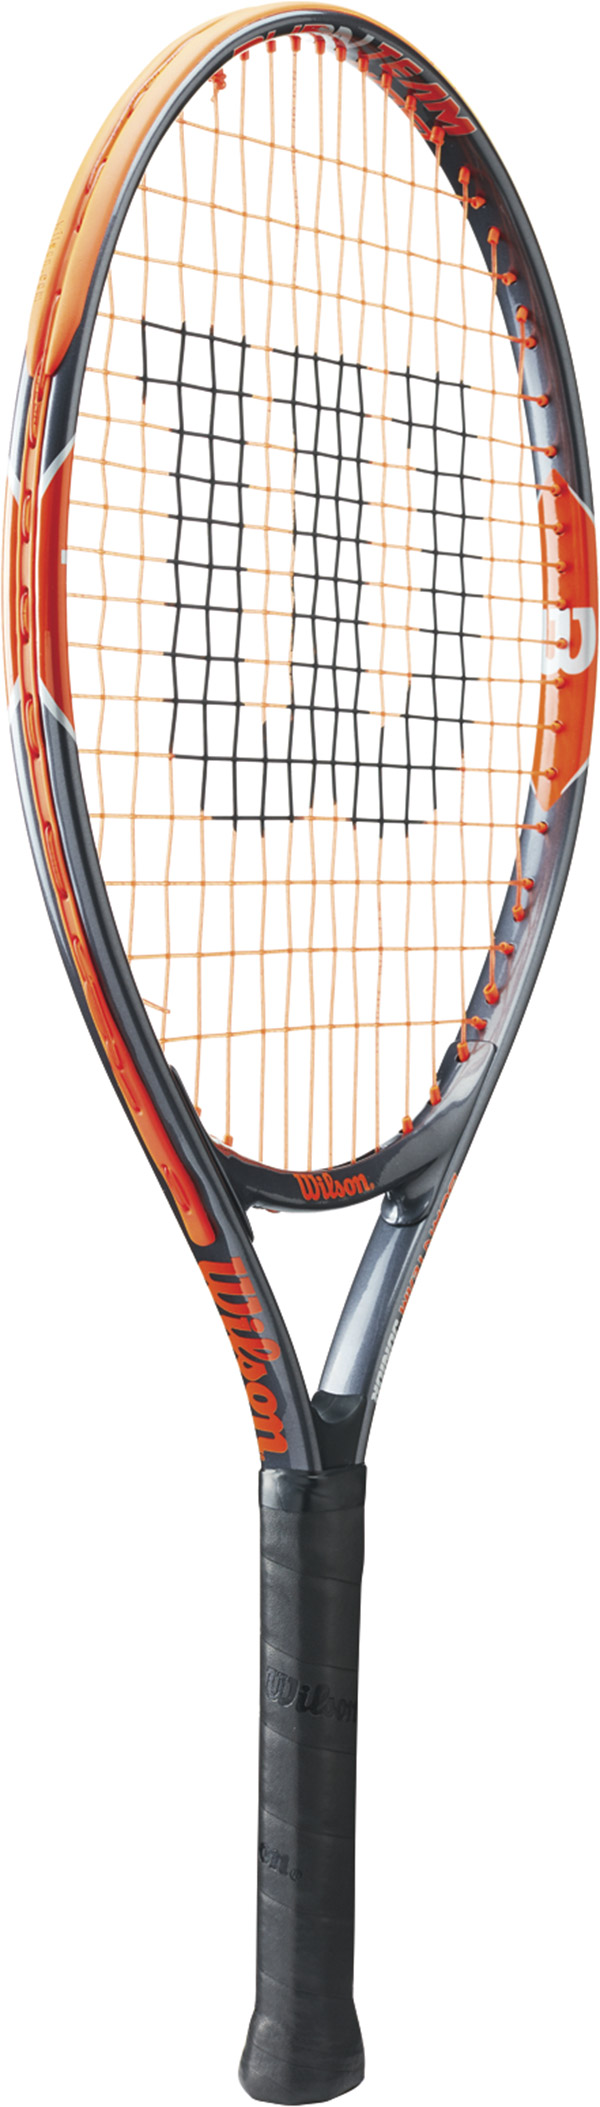 Wilson Burn Team 23 Junior Strung - Mcjrb5 - Tennis Racquets Junior Tennis Racquets Wilson MCJRB5